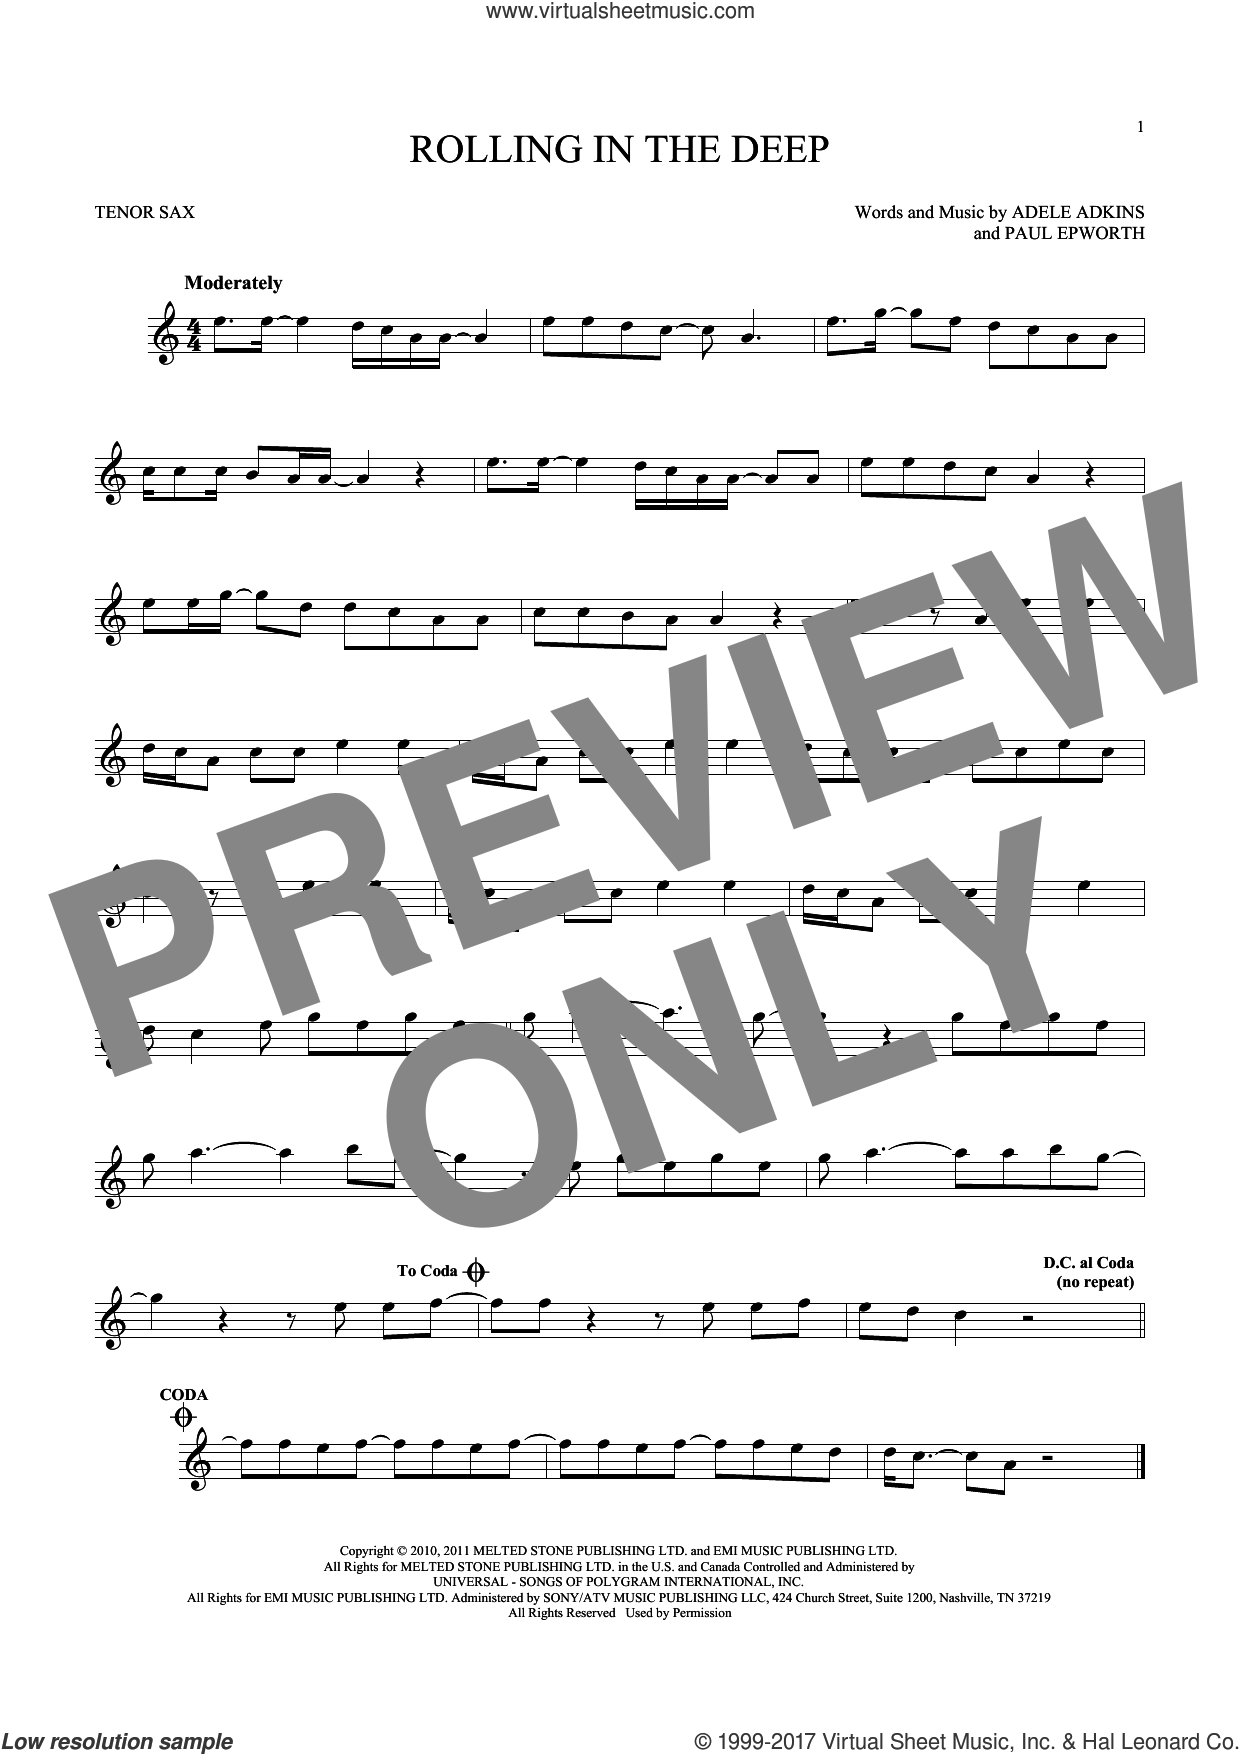 Rolling In The Deep sheet music for tenor saxophone solo by Adele, Adele Adkins and Paul Epworth, intermediate skill level